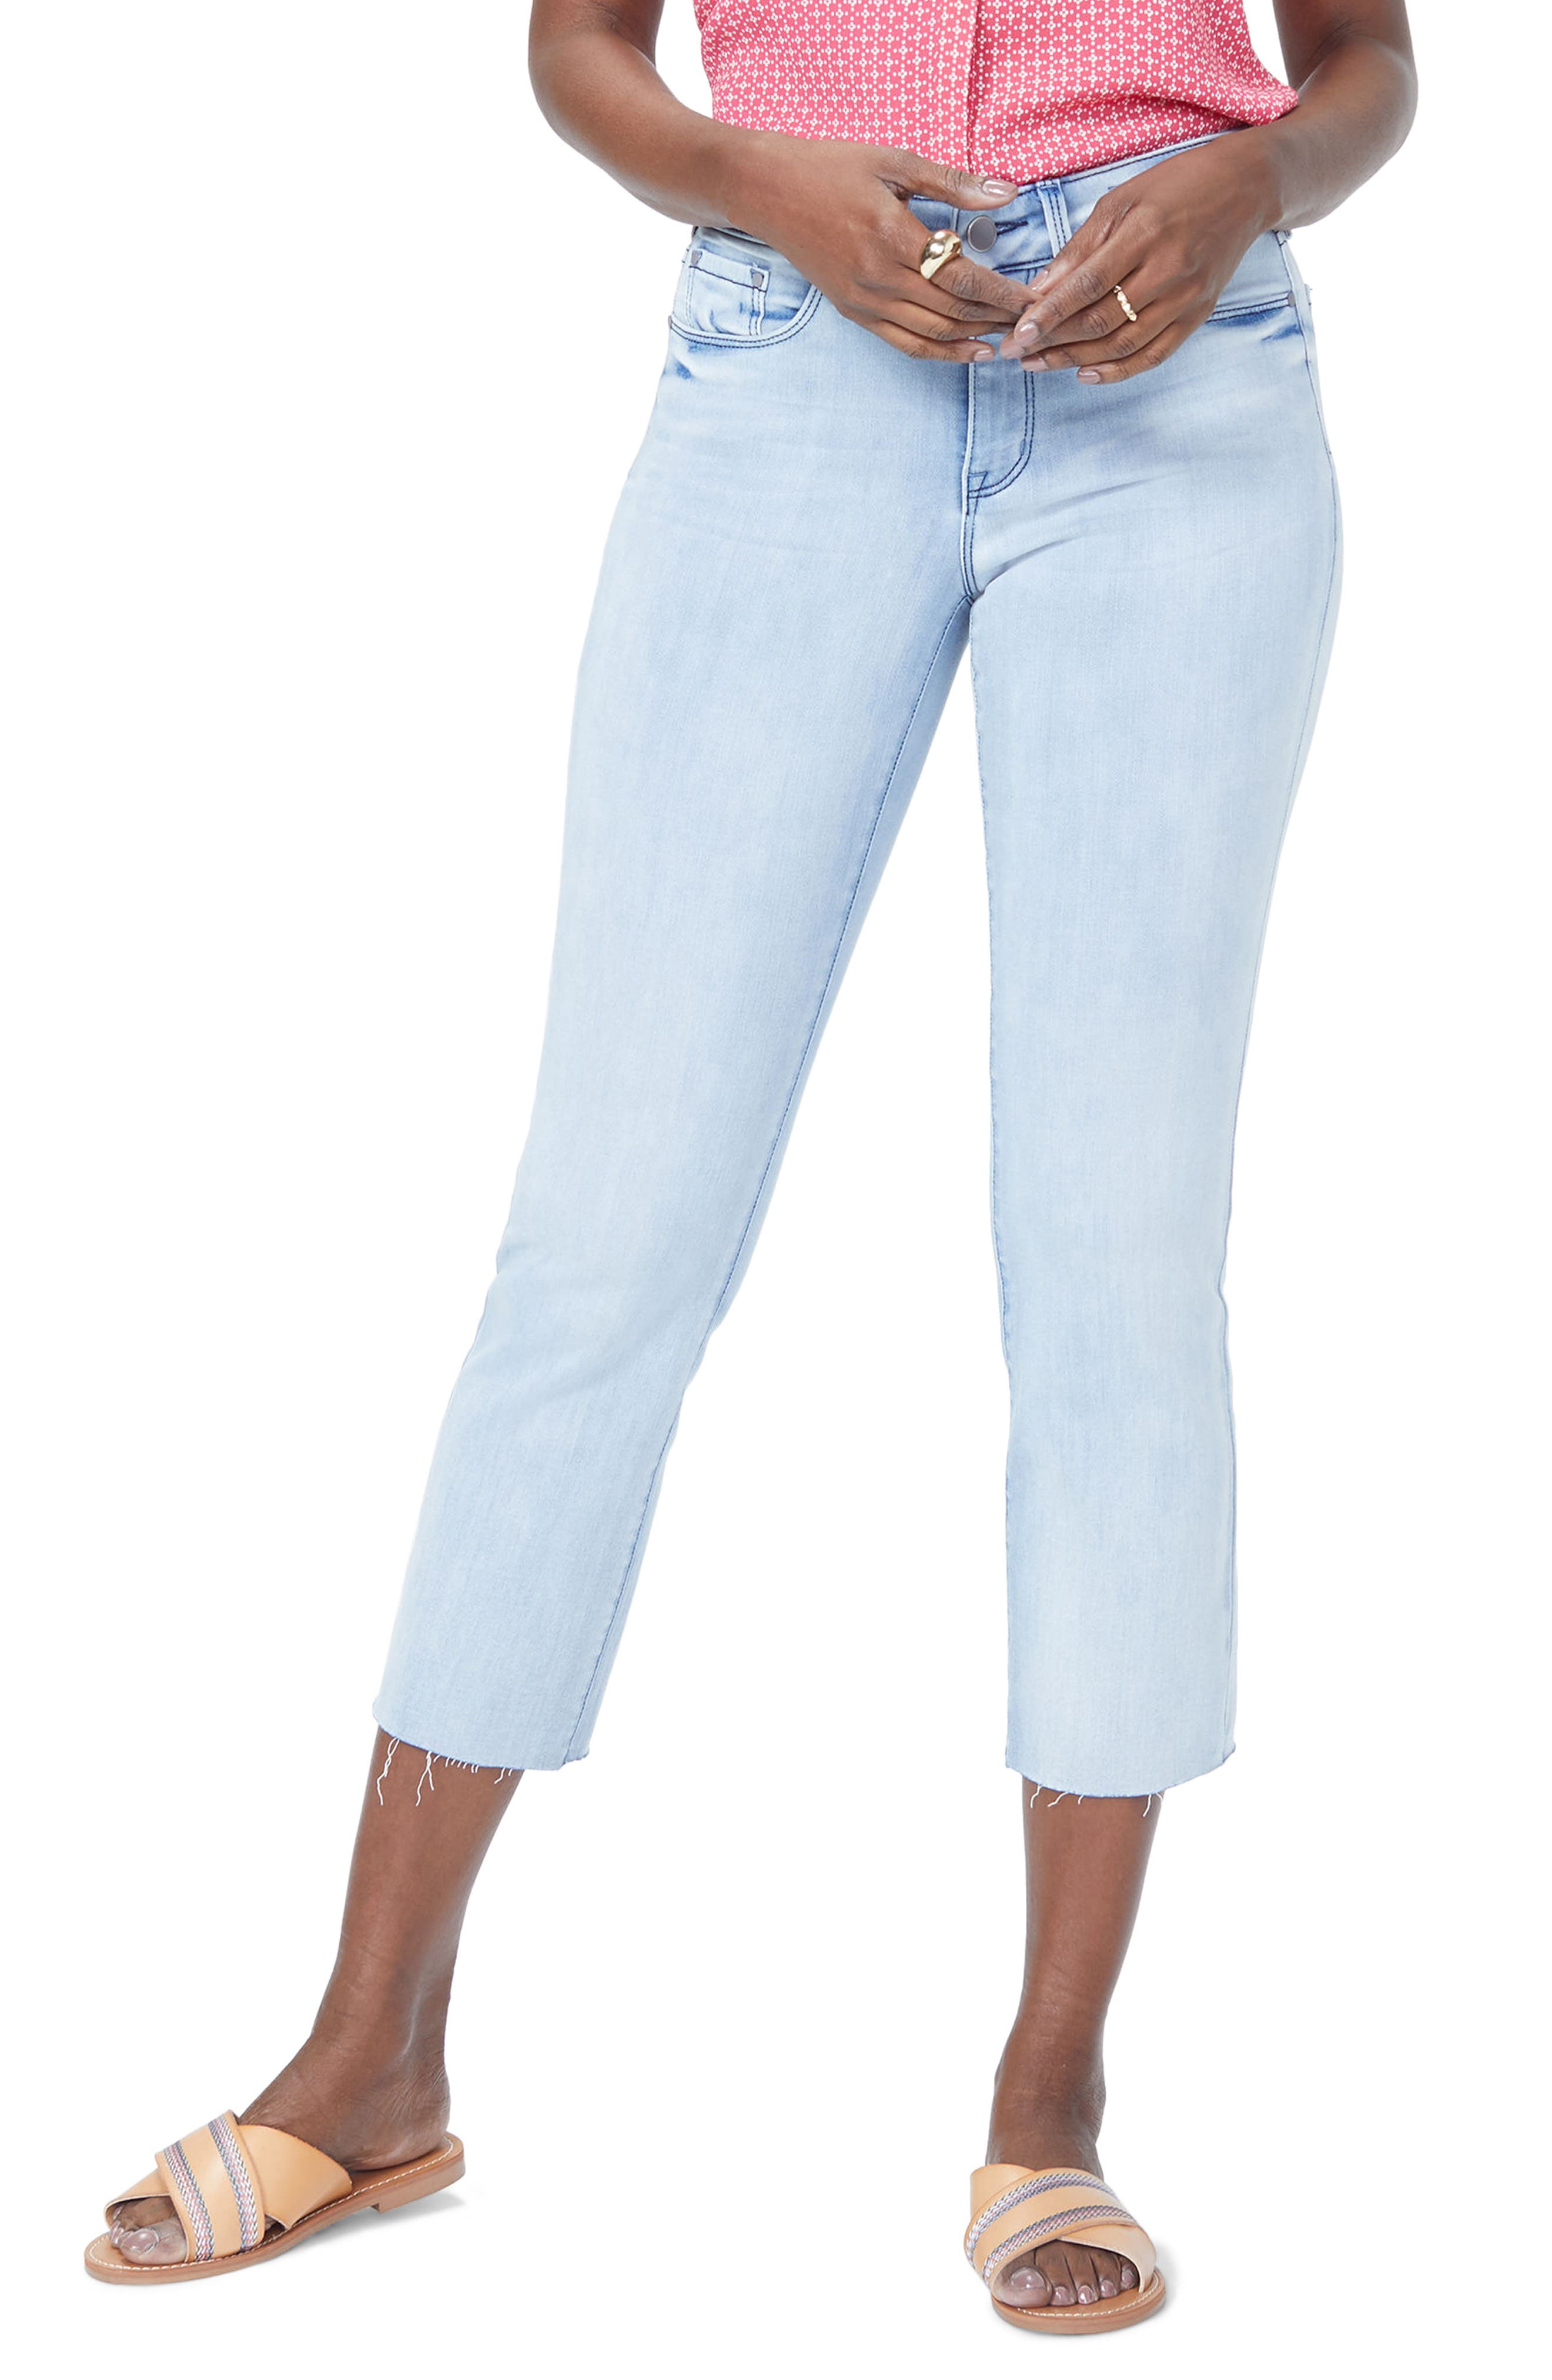 Marilyn Ankle Skinny Jeans,                         Main,                         color, Stillwater